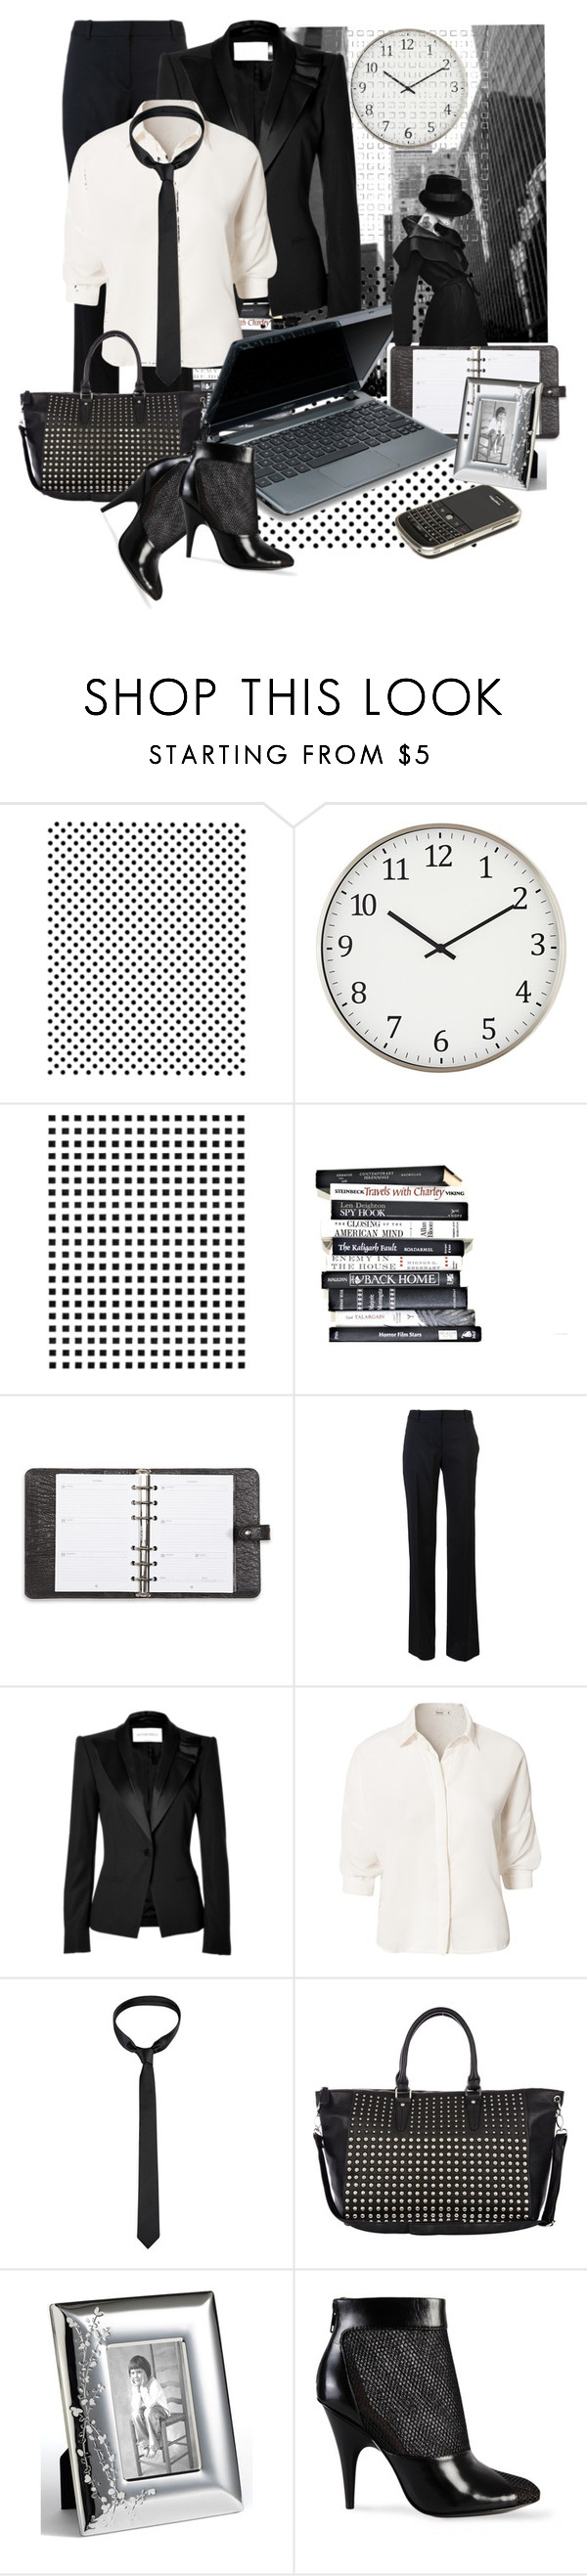 """""""Рабочее время"""" by holidai ❤ liked on Polyvore featuring Camp, Universal Lighting and Decor, Mulberry, Theory, Viktor & Rolf, Rut&Circle, River Island, Giorgio Armani, Kate Spade and 3.1 Phillip Lim"""